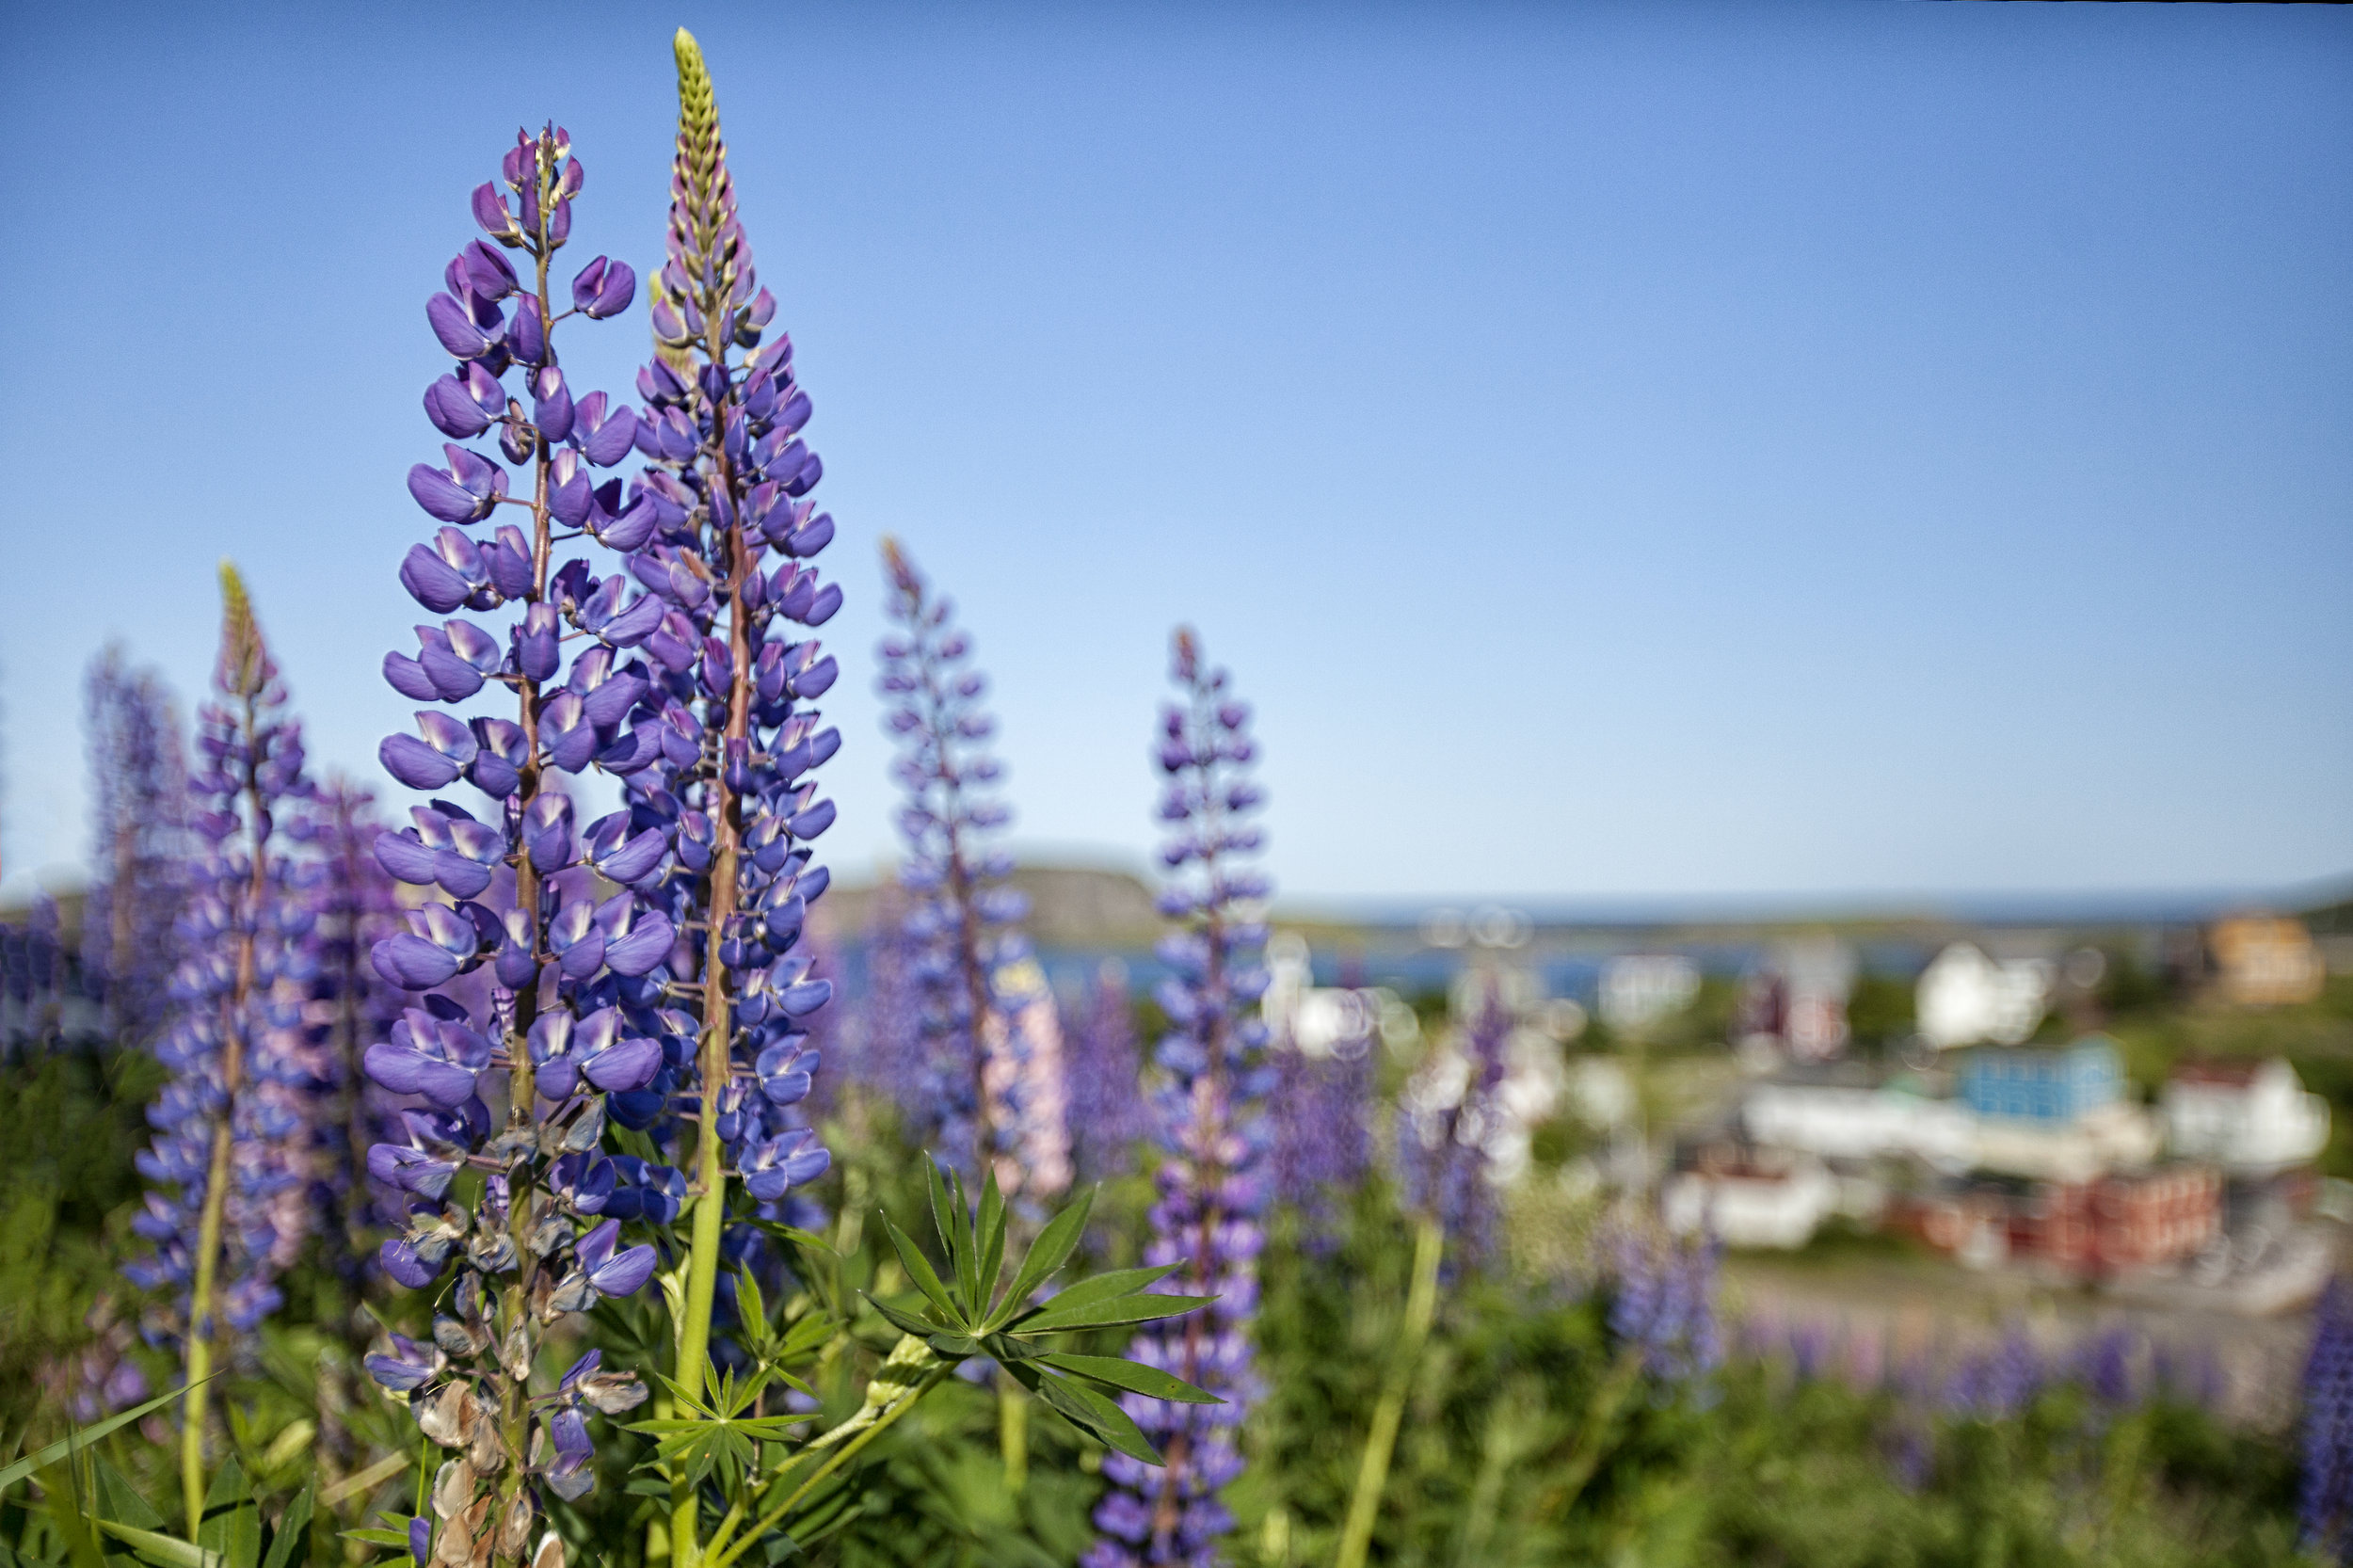 Lupins against Trinity - Across the Blue Planet